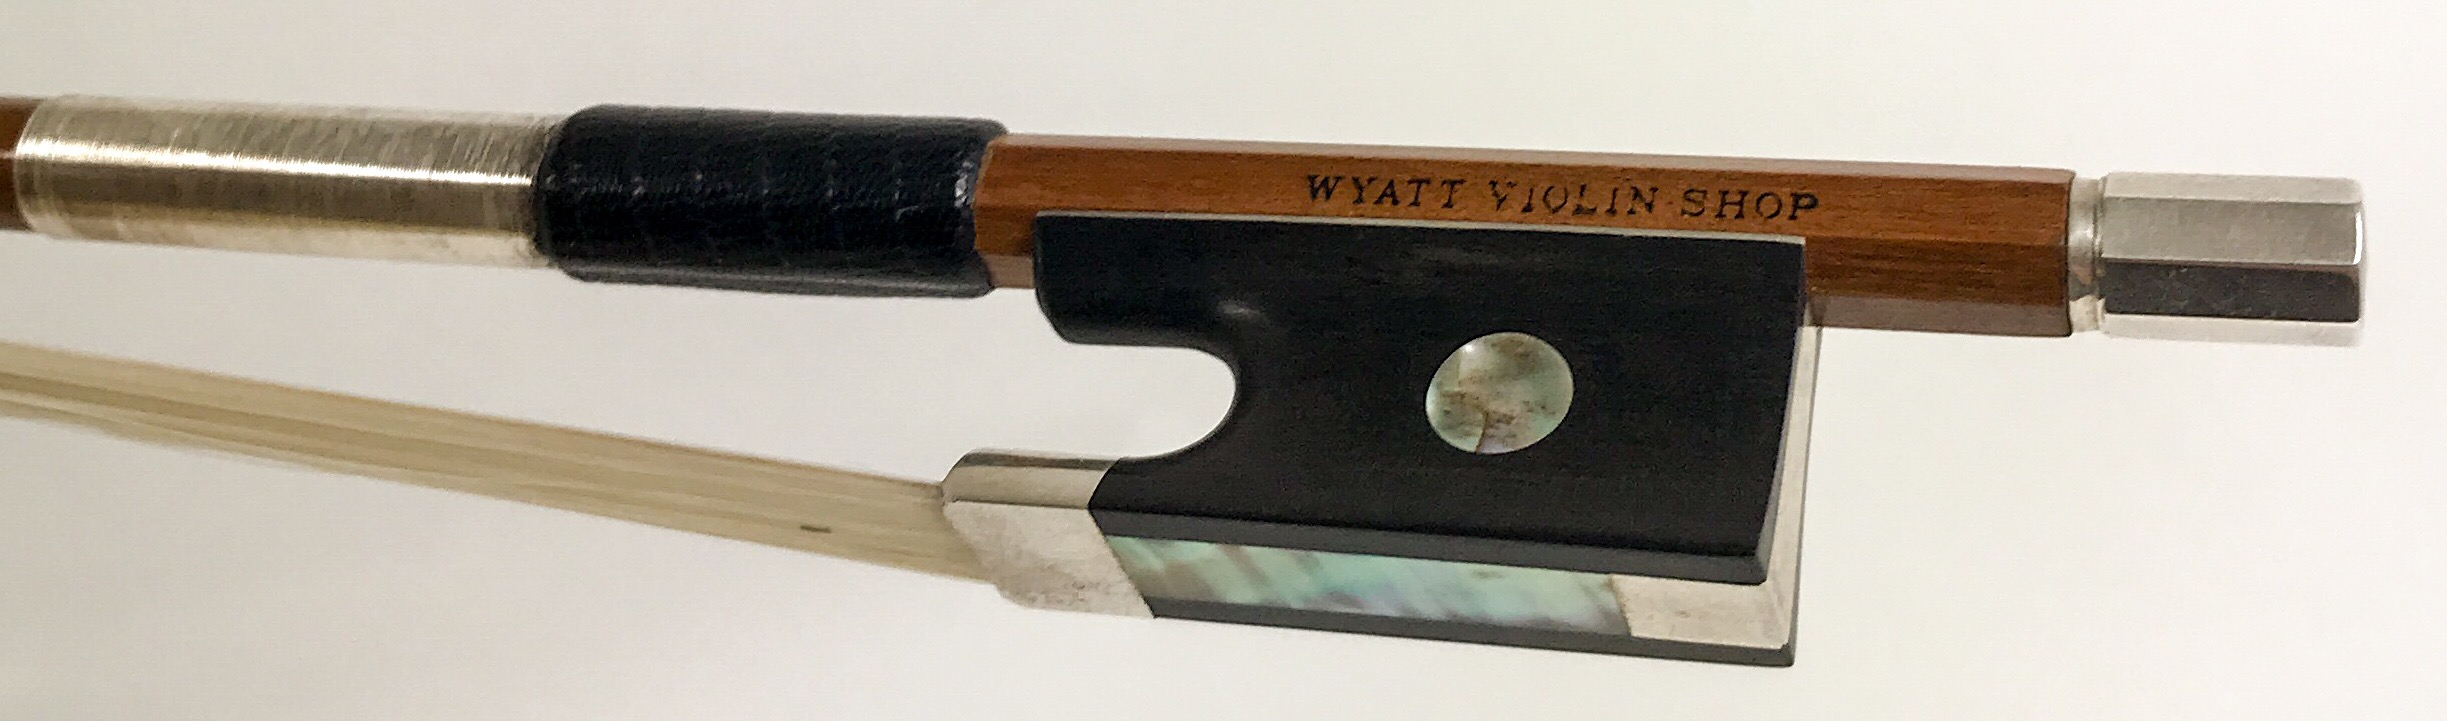 Wyatt Violin Shop   Silver Mounted Pernambuco   Violin - $300/ Viola $360/ Cello $450 / Bass n/a  These pernambuco bows are carefully hand selected by Mr. Wyatt. Quality of wood, balance, weight, and play-ability are the main focus when we aquire these wonderful bows. We brand our shops name on them to ensure we stand behind them 100%. An excellent value for a student wood bow.